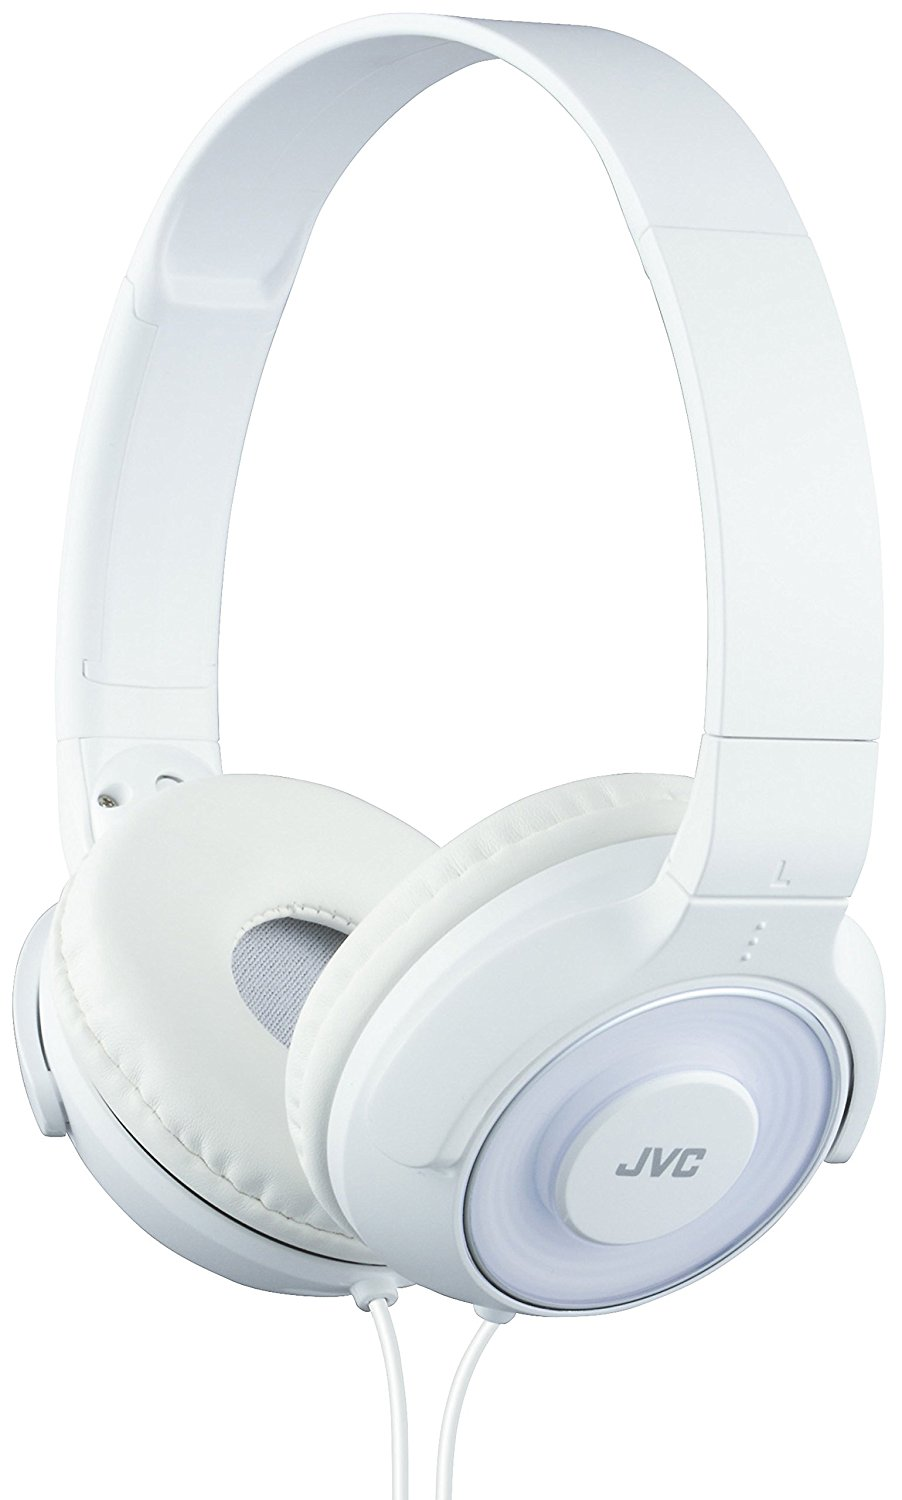 JVC HA-S220-W On-Ear Headphones White